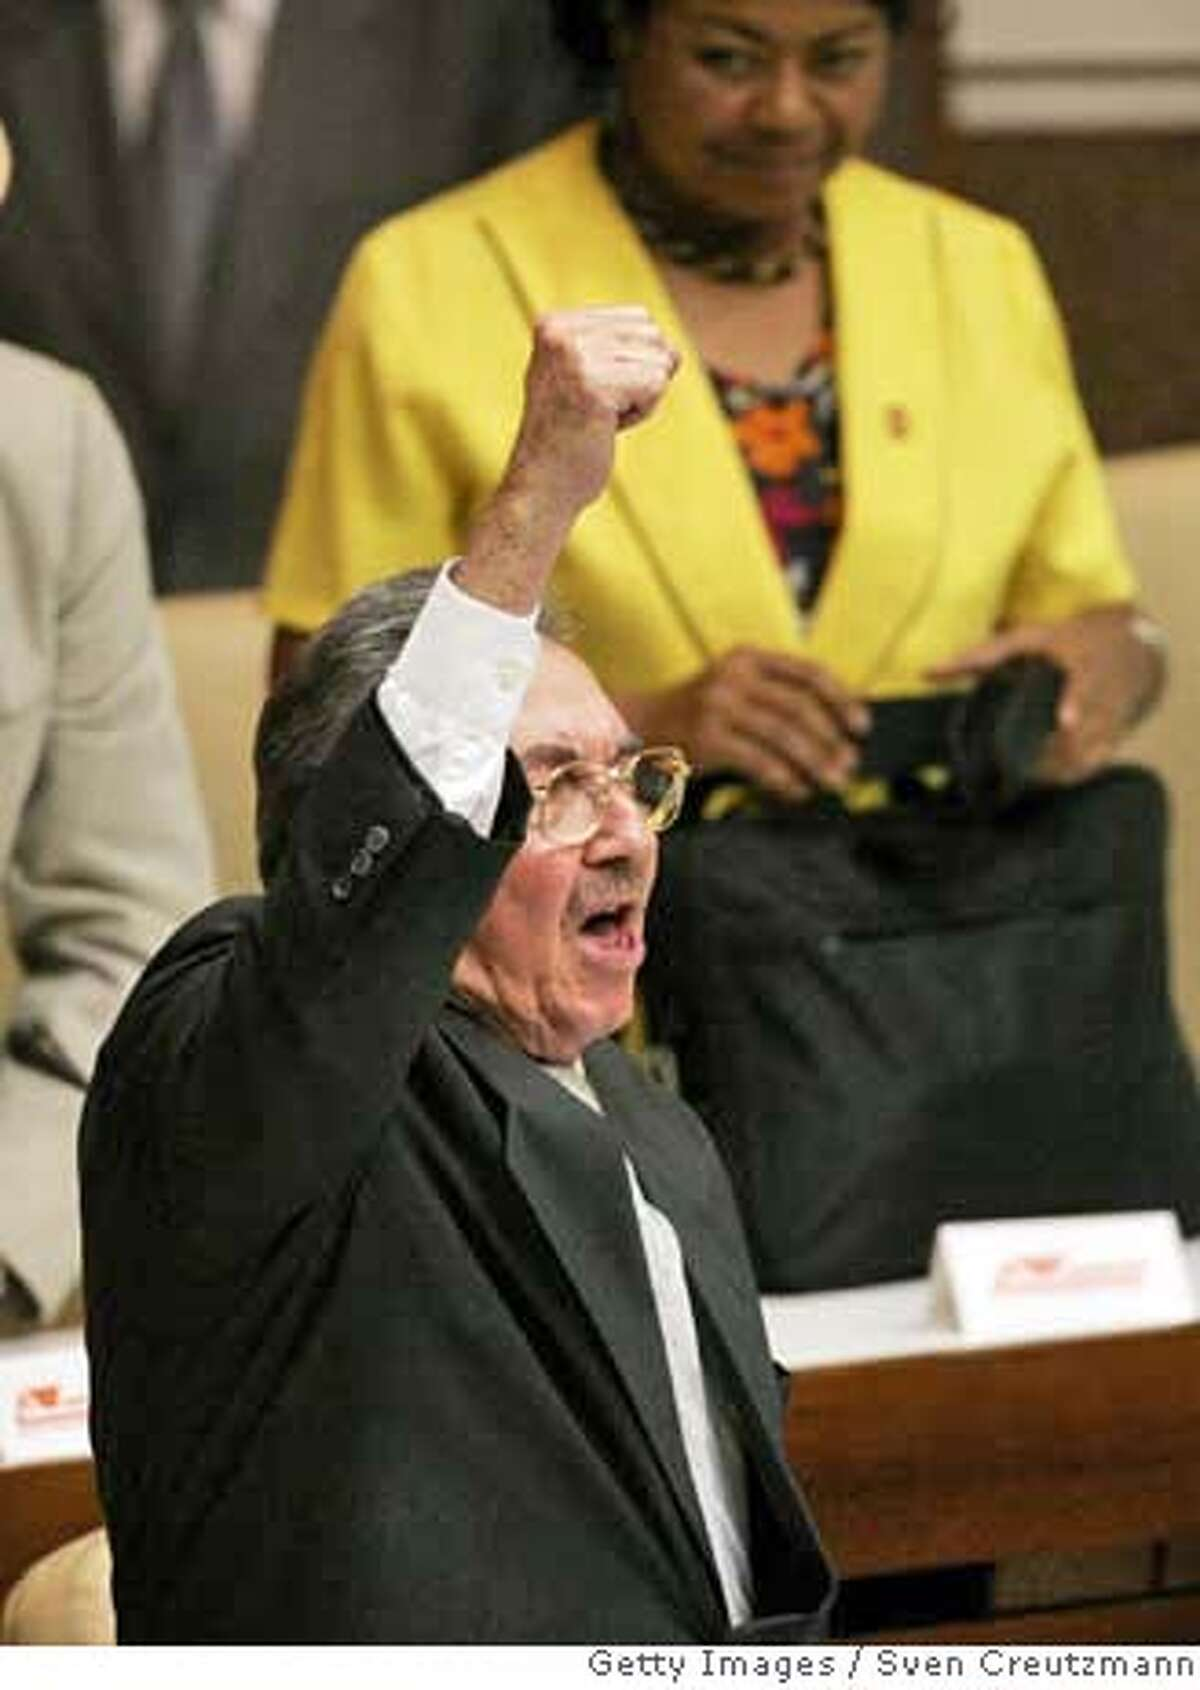 HAVANA - FEBRUARY 24: (AGENTS OUT; MAGAZINES OUT) Raul Castro, after having been elected President of Cuba and succeeding his brother Fidel Castro, raises his arm and clenches his fist as he shouts